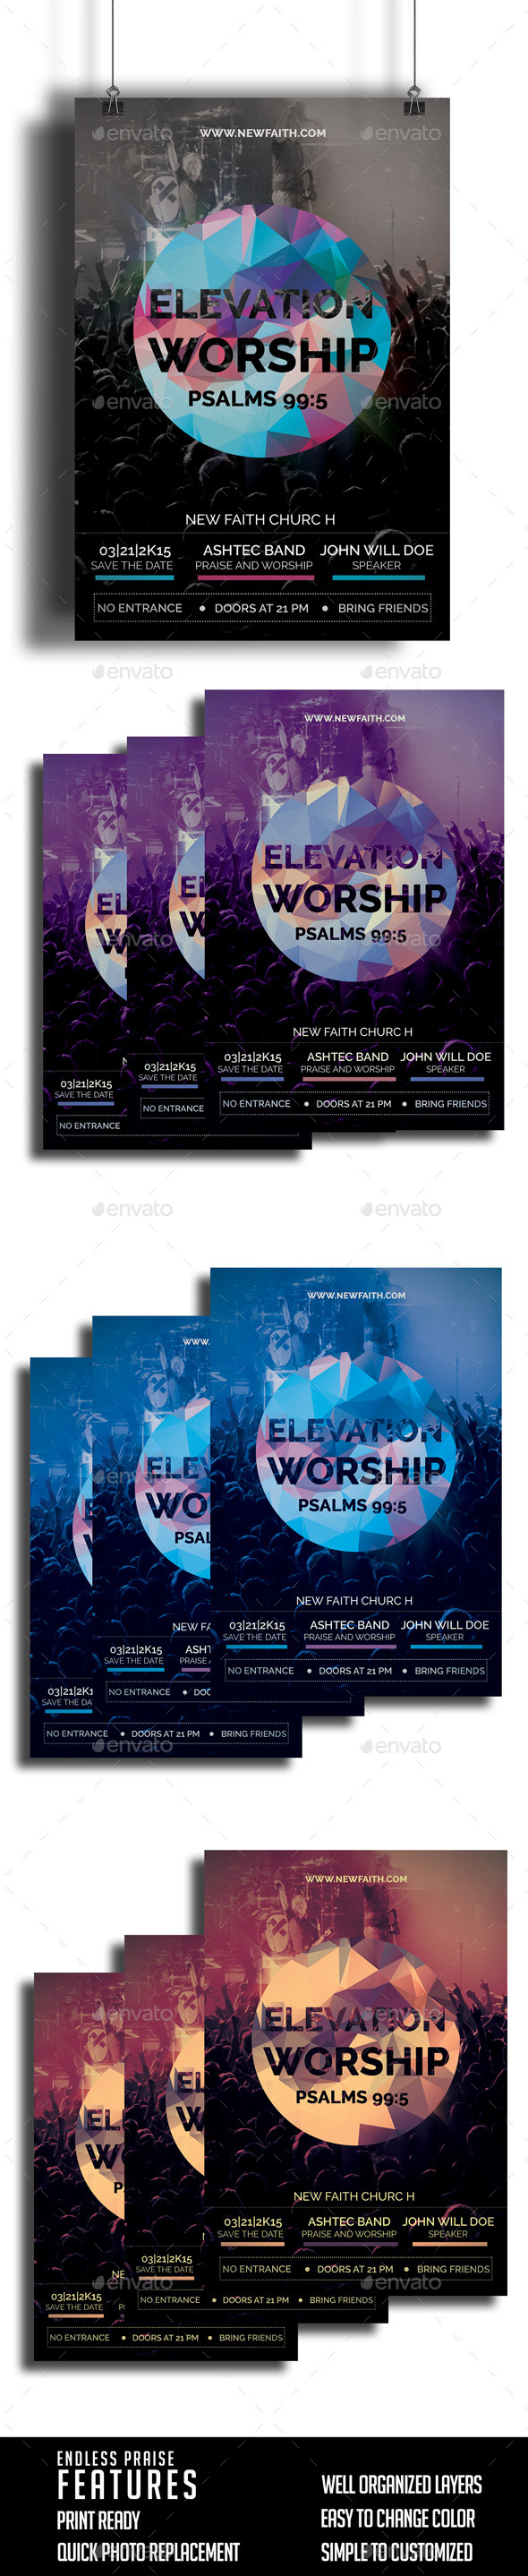 GraphicRiver Elevation Worship Church Flyer 10307619